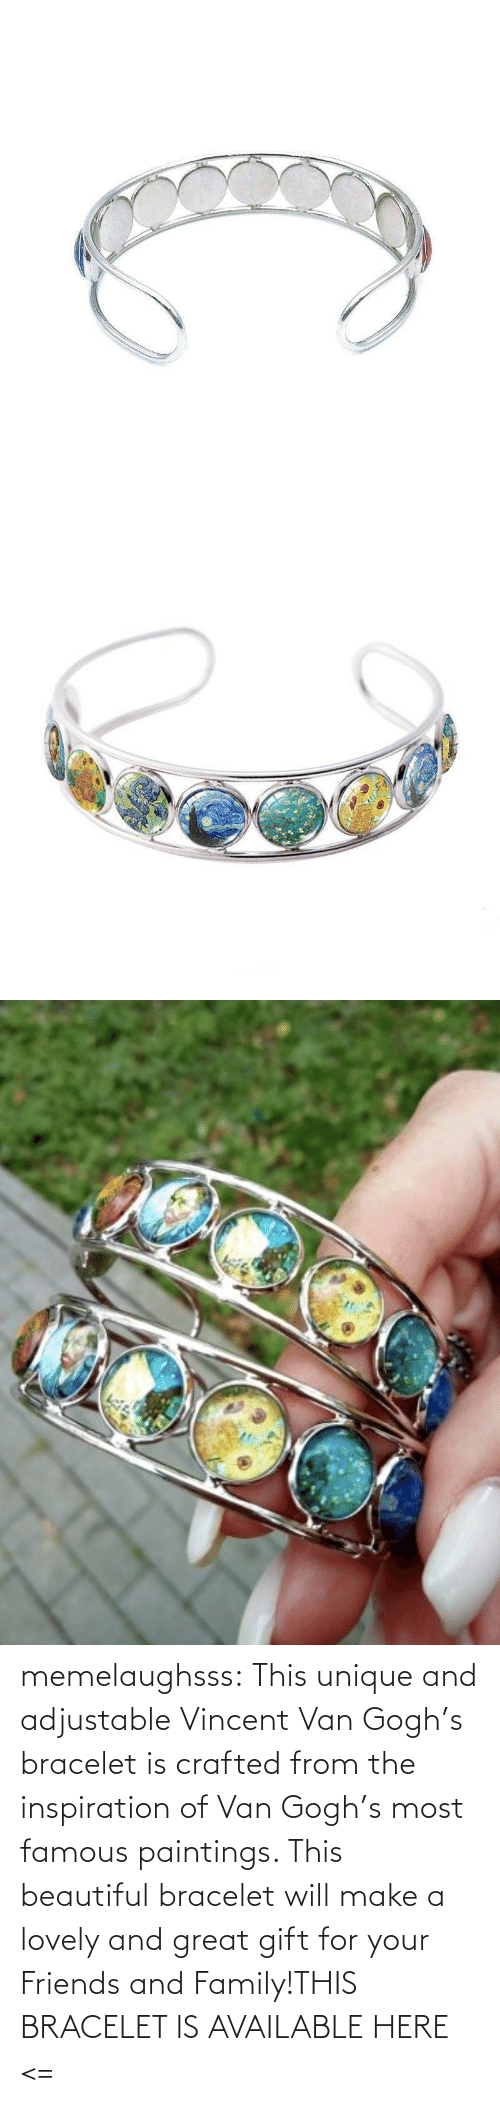 famous: memelaughsss:  This unique and adjustable Vincent Van Gogh's bracelet is crafted from the inspiration of Van Gogh's most famous paintings. This beautiful bracelet will make a lovely and great gift for your Friends and Family!THIS BRACELET IS AVAILABLE HERE <=